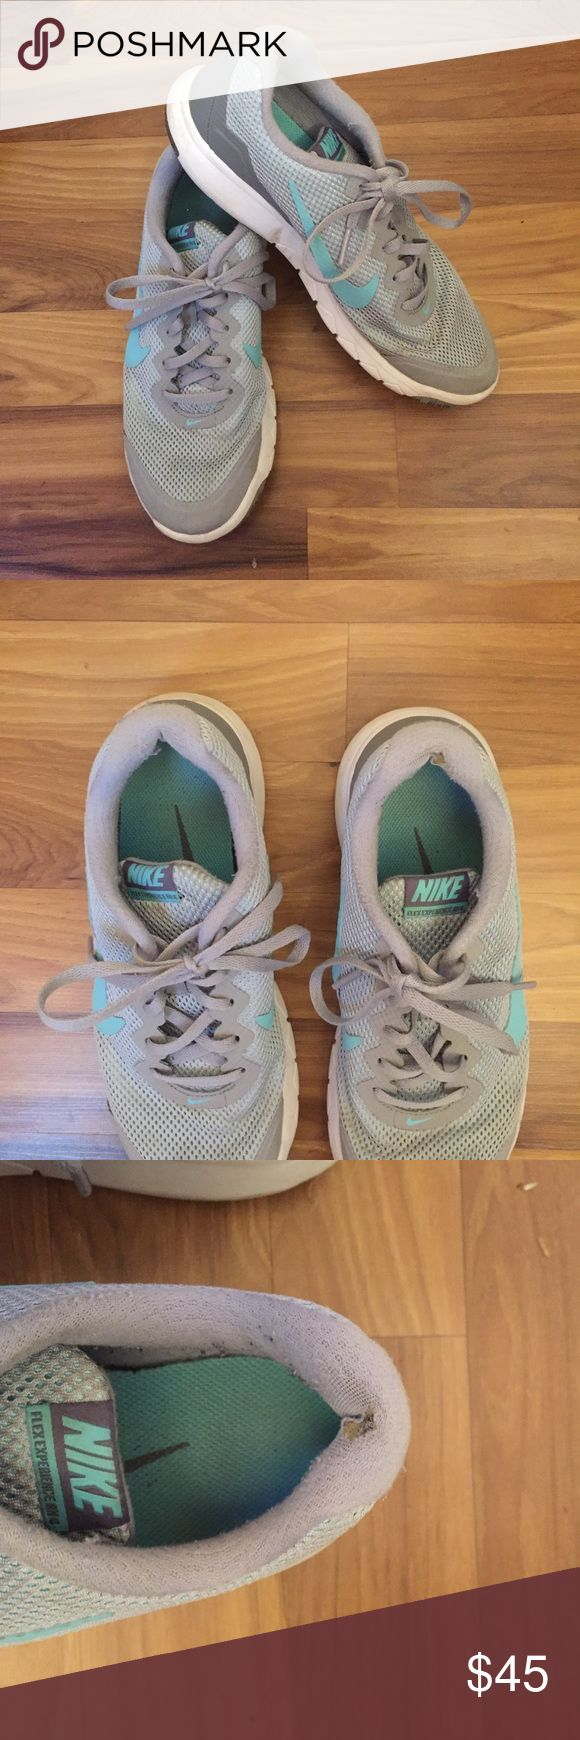 ✔️NIKE Tiffany blue/grey FLEX EXPERIENCE RN 4✔️ See all photos for signs of wear. Light grey with Tiffany blue details. Style is FLEX EXPERIENCE RN 4. Small holes in the back of each heel, doesn't effect the wear. Nike Shoes Athletic Shoes